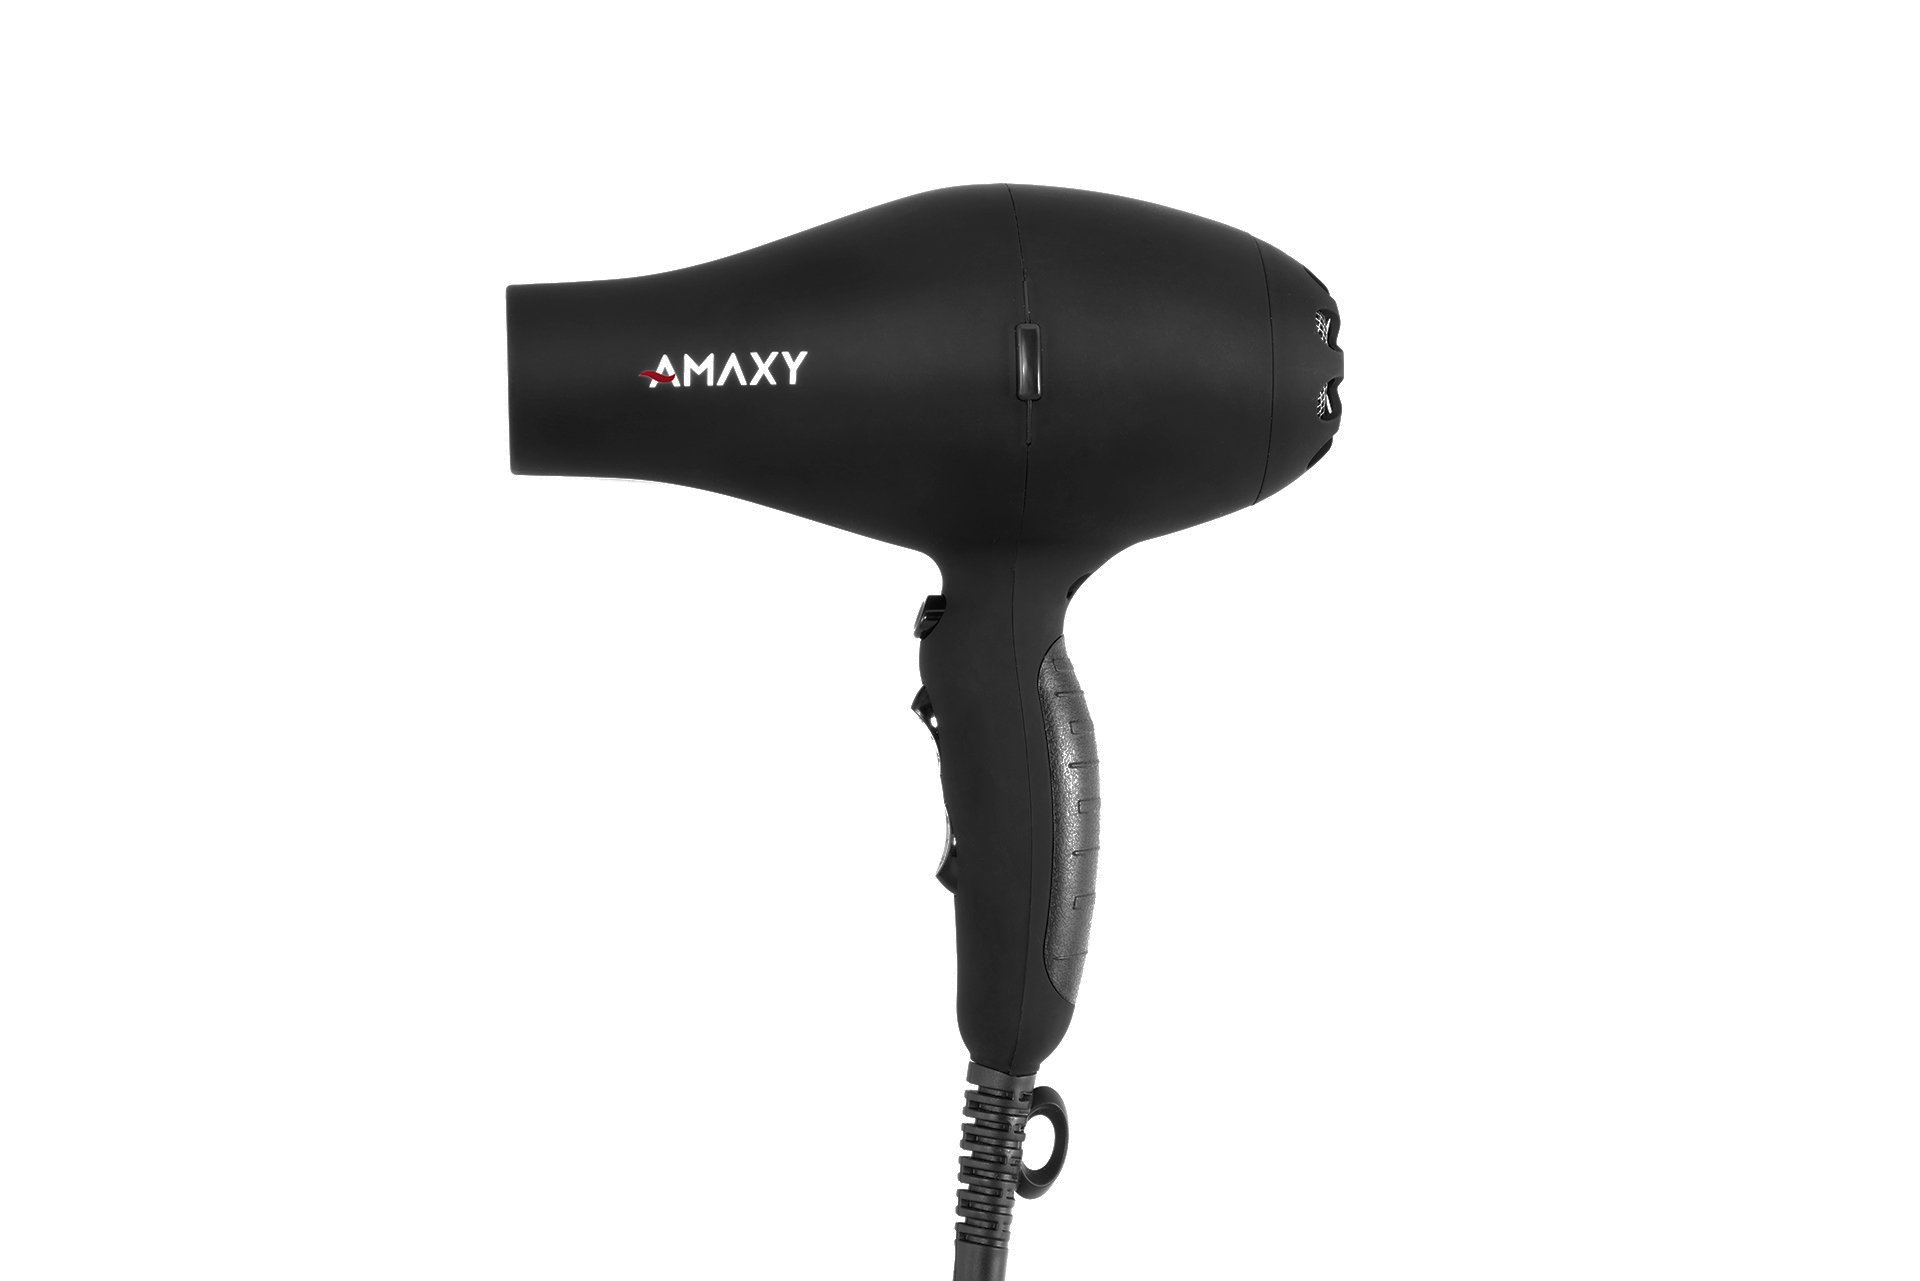 AMAXY 1st Edition Salon Professional Hair Dryer Real Infrared Light Honeycomb Ceramic Therapy - Prevent Hair Loss & Overheating & Damaged - Frizz Free - Shinier & Smoother - Easy to Blow Dry - 61qf3vtLuFL - 1st Generation Real Infrared Light Professional Hair Dryer With Patented Honeycomb Ceramic Therapy – Prevent Hair Loss & Overheating – Heal Damaged Hair – Frizz Free – More Shine – Volume – Smoother